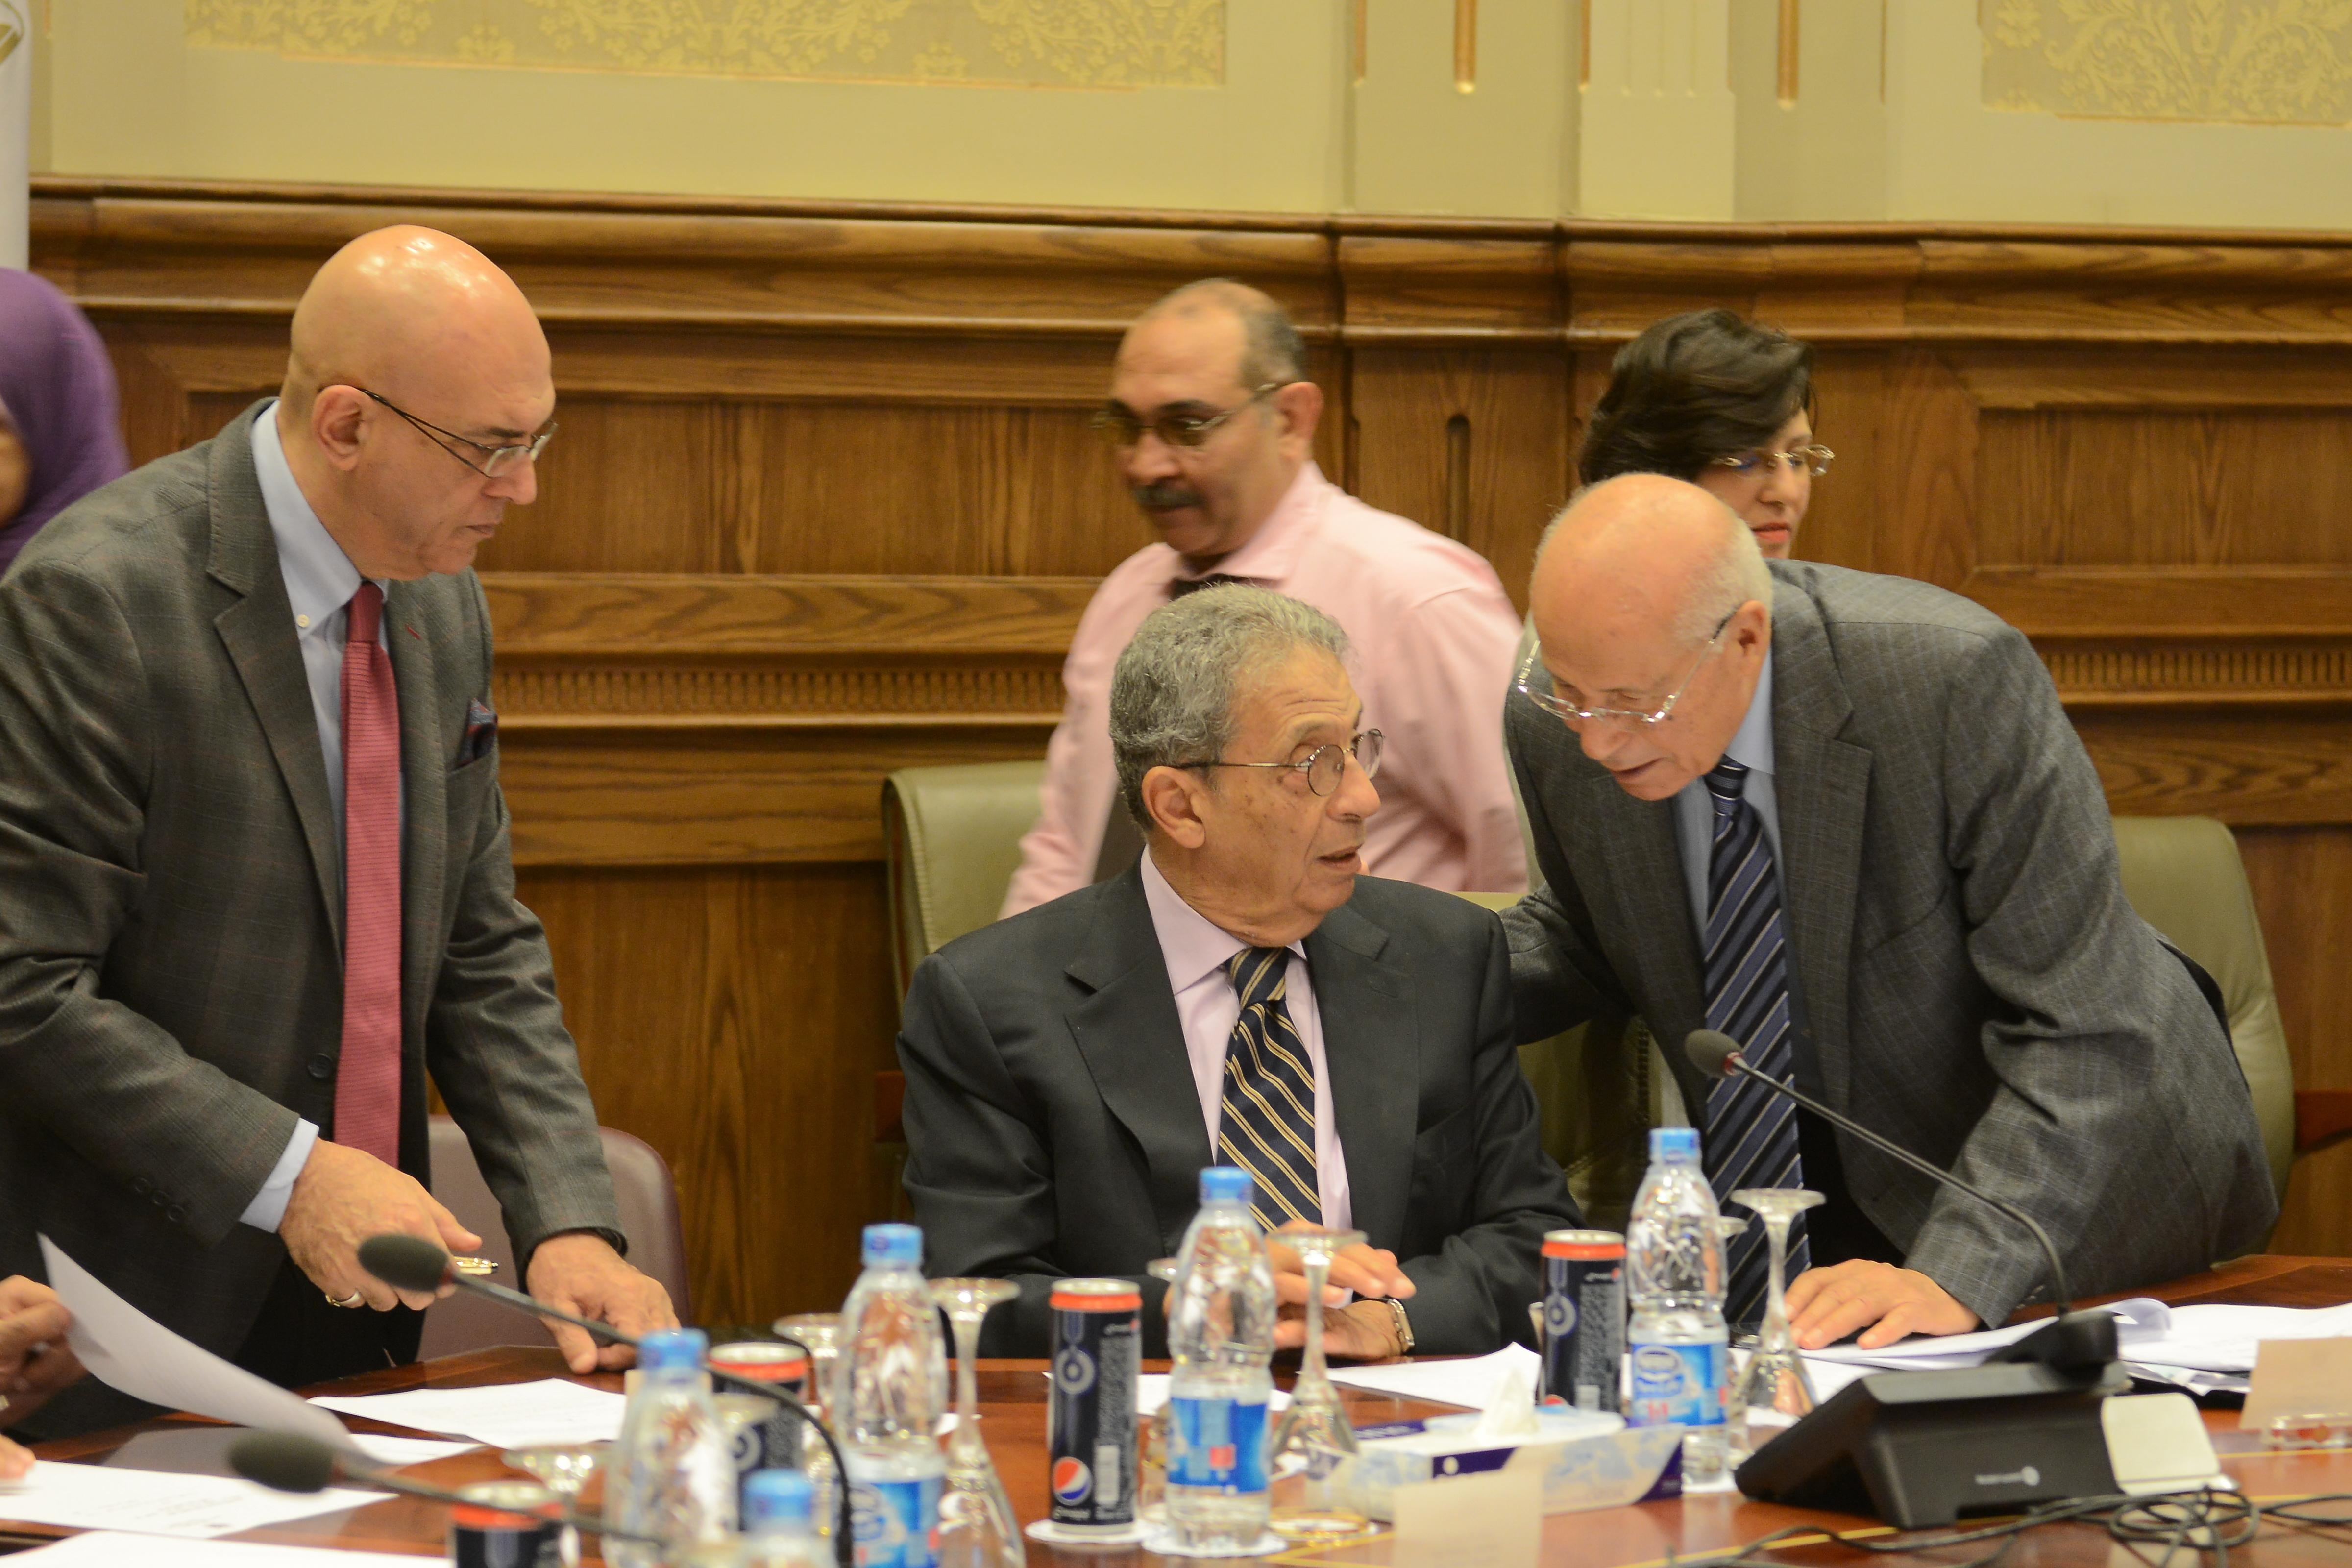 Chairman of the Constituent Assembly, Amr Moussa (C) and Spokesman of the Assembly, Mohamed Salmawy (L) during Thursday's session (Photo by Ali AlMalky)